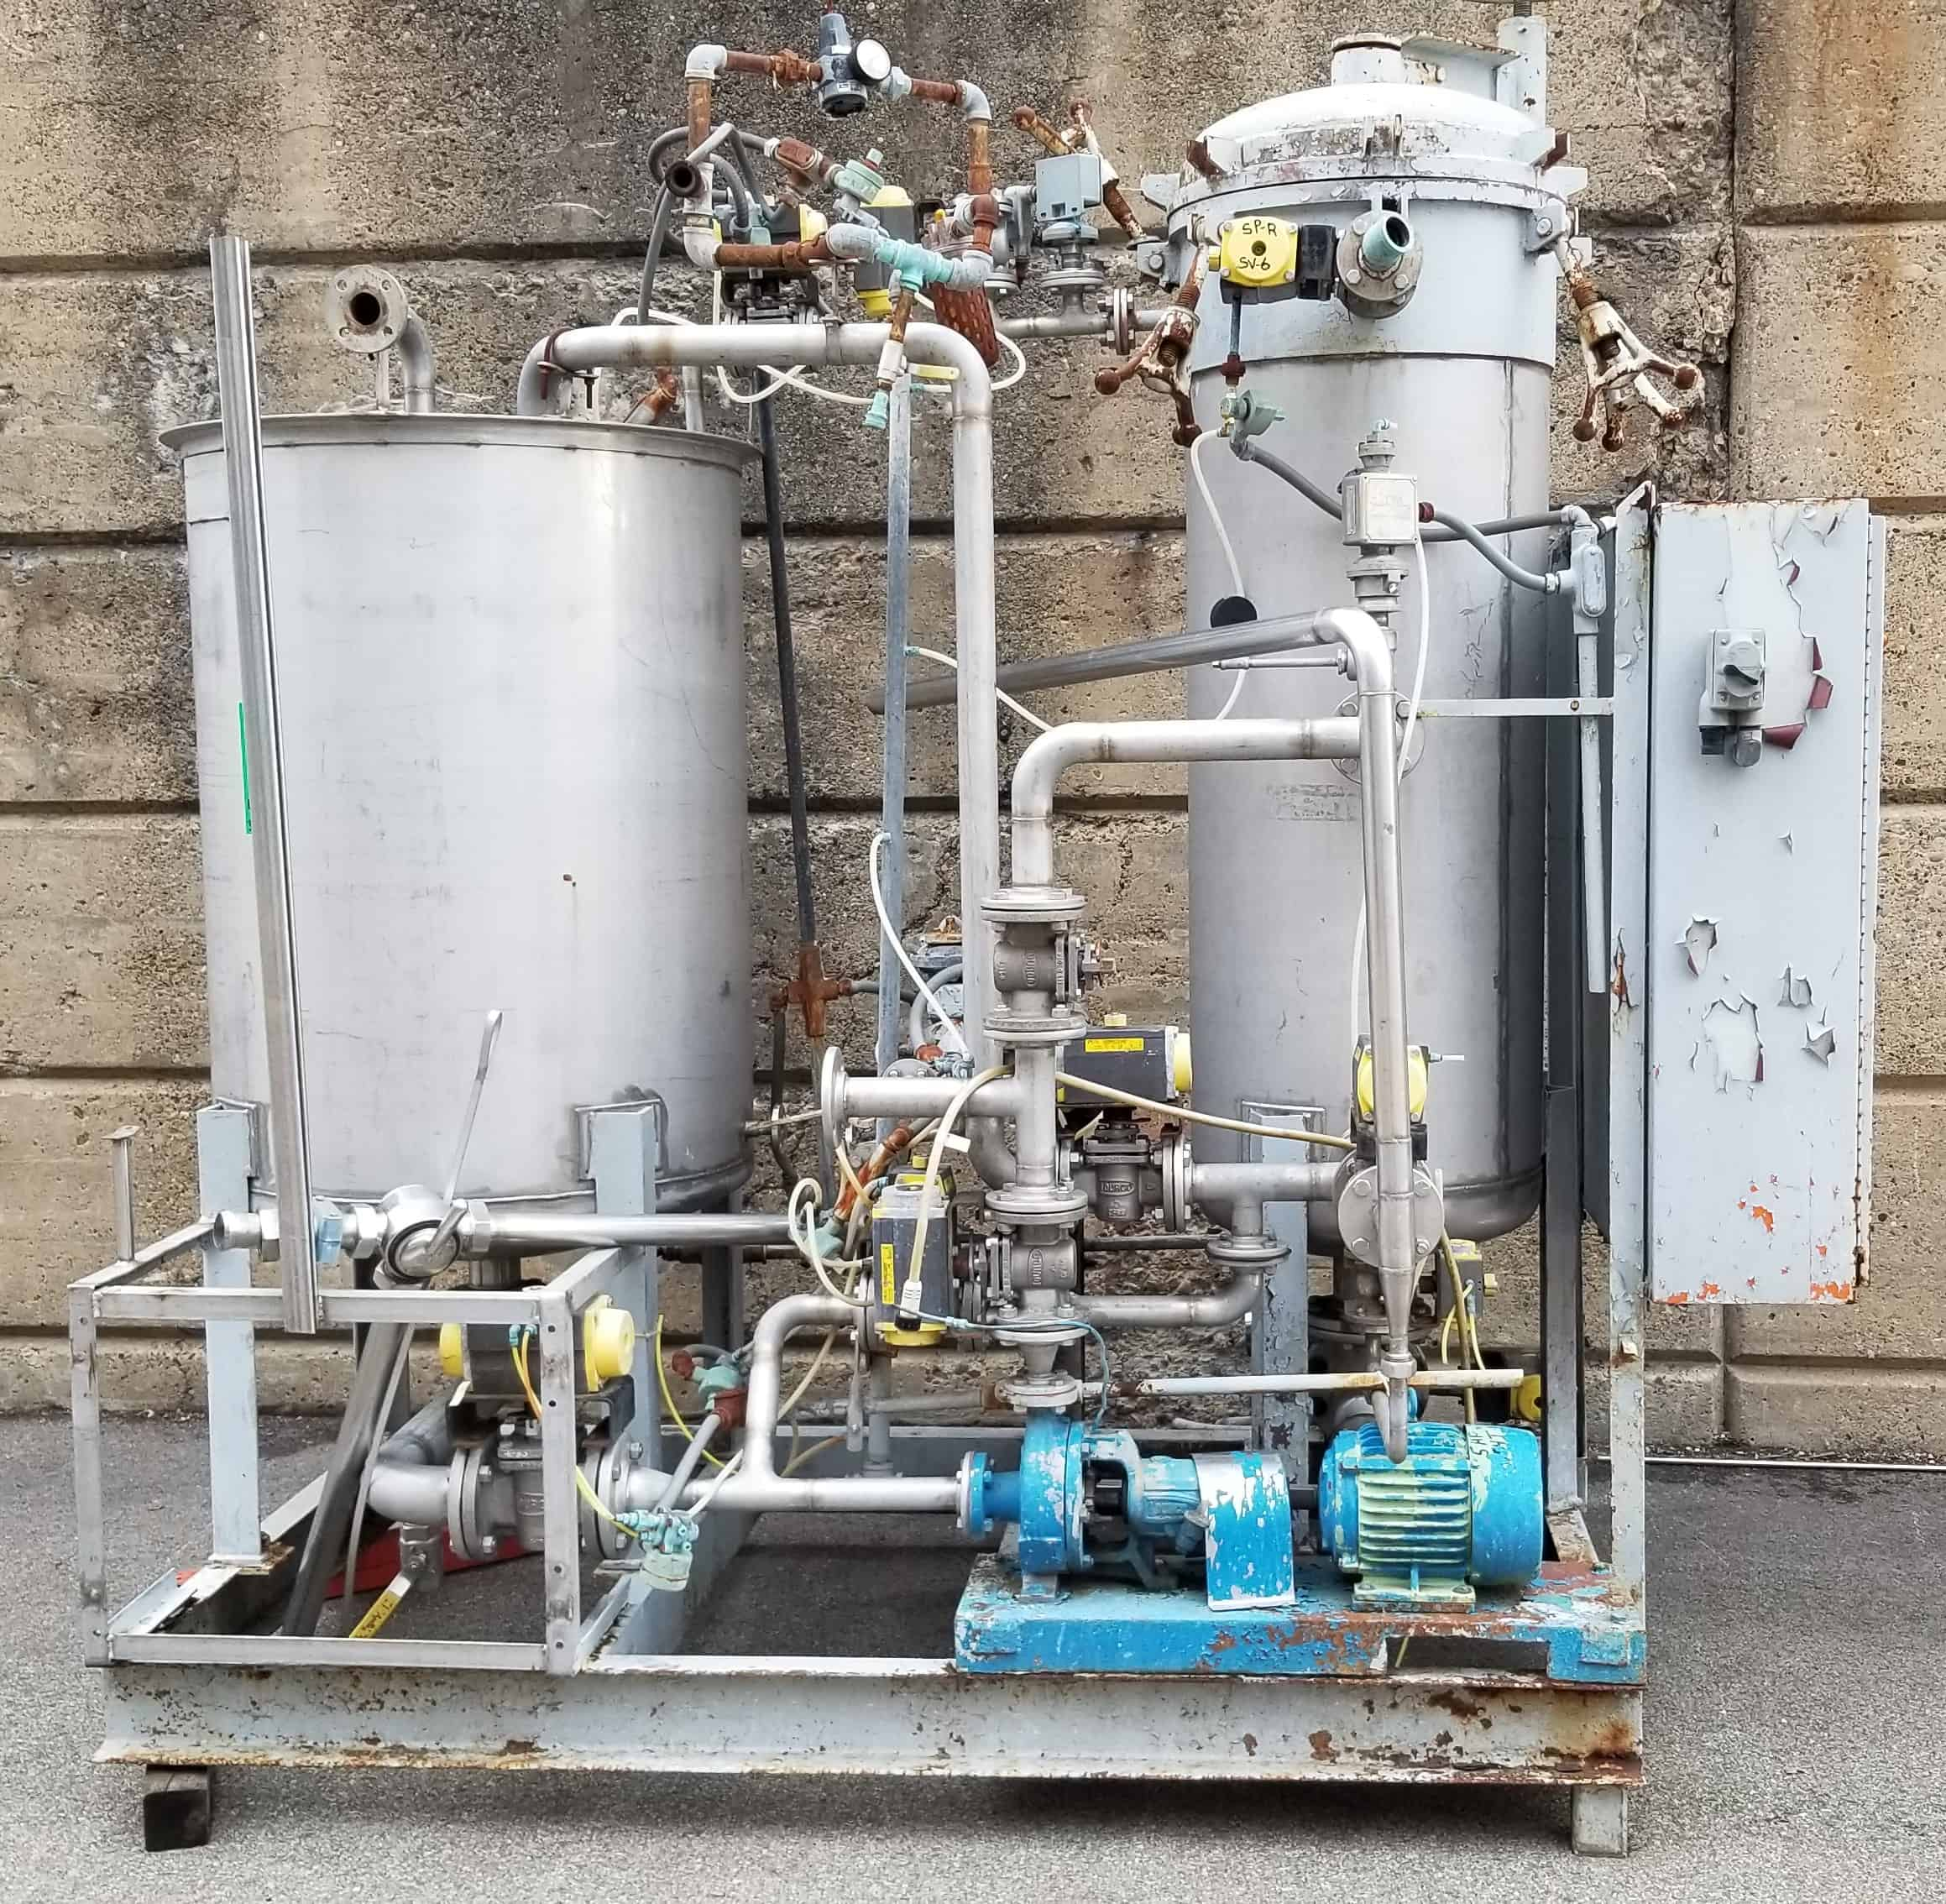 "Skid Mounted Tank System with 50"" H x 36"" W Open Top S/S Tank, Durco 68"" H x 24"" W Tank 75 psi @ 250 degrees, S/N E14251, Durco Centrifugal Pump, Madden Chemical Pump, Related Valves, Piping & Controls"